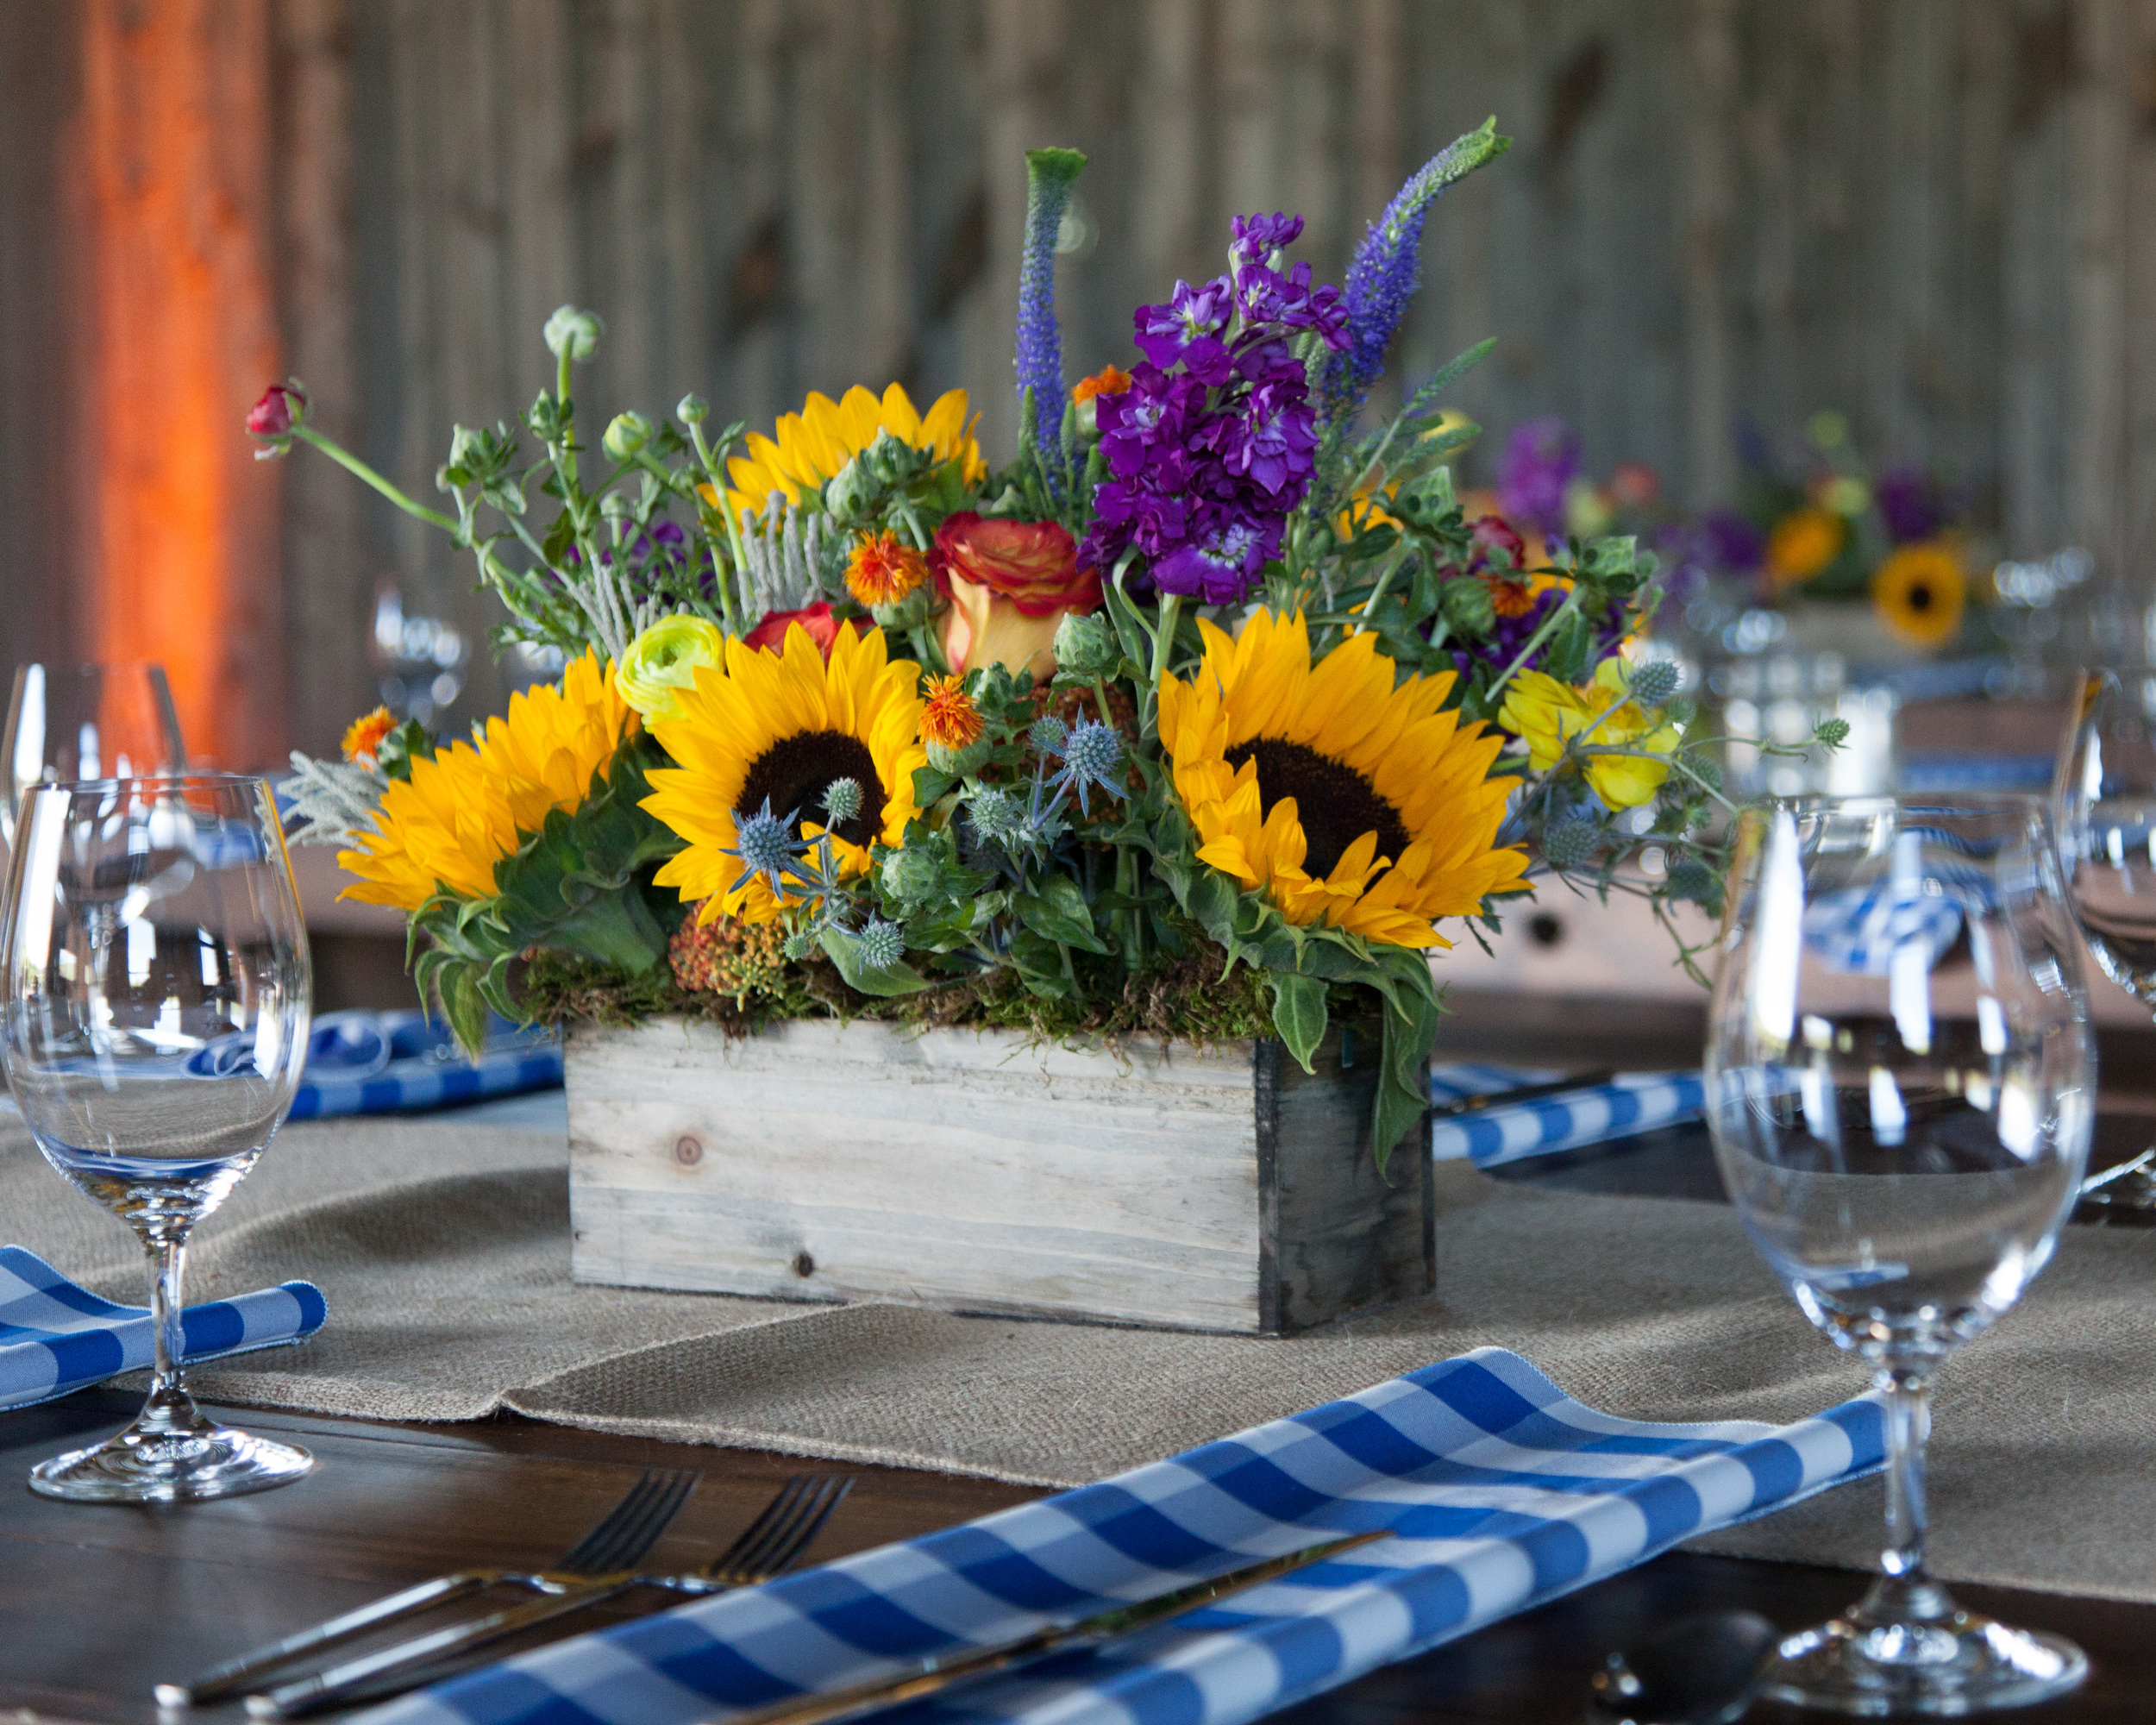 """We recently had a great opportunity to work with a local company in Park City for a """"ho-down"""" event located at the beautiful  Blue Sky Ranch  in Wanship, UT.  RMC (Rocky Mountain Connection) organized and designed this Western themed party. The elements were so bright, vibrant and whimsical. Some of our favorite details were the blue checkered napkins and of course the mechanical bull for guests to ride and try to conquer. A huge thank you to Kati Price and her team at RMC for allowing everyone at Lilac Floral to collaborate together for such a fun and successful event. Photos Courtesy of Marc Estabrook"""